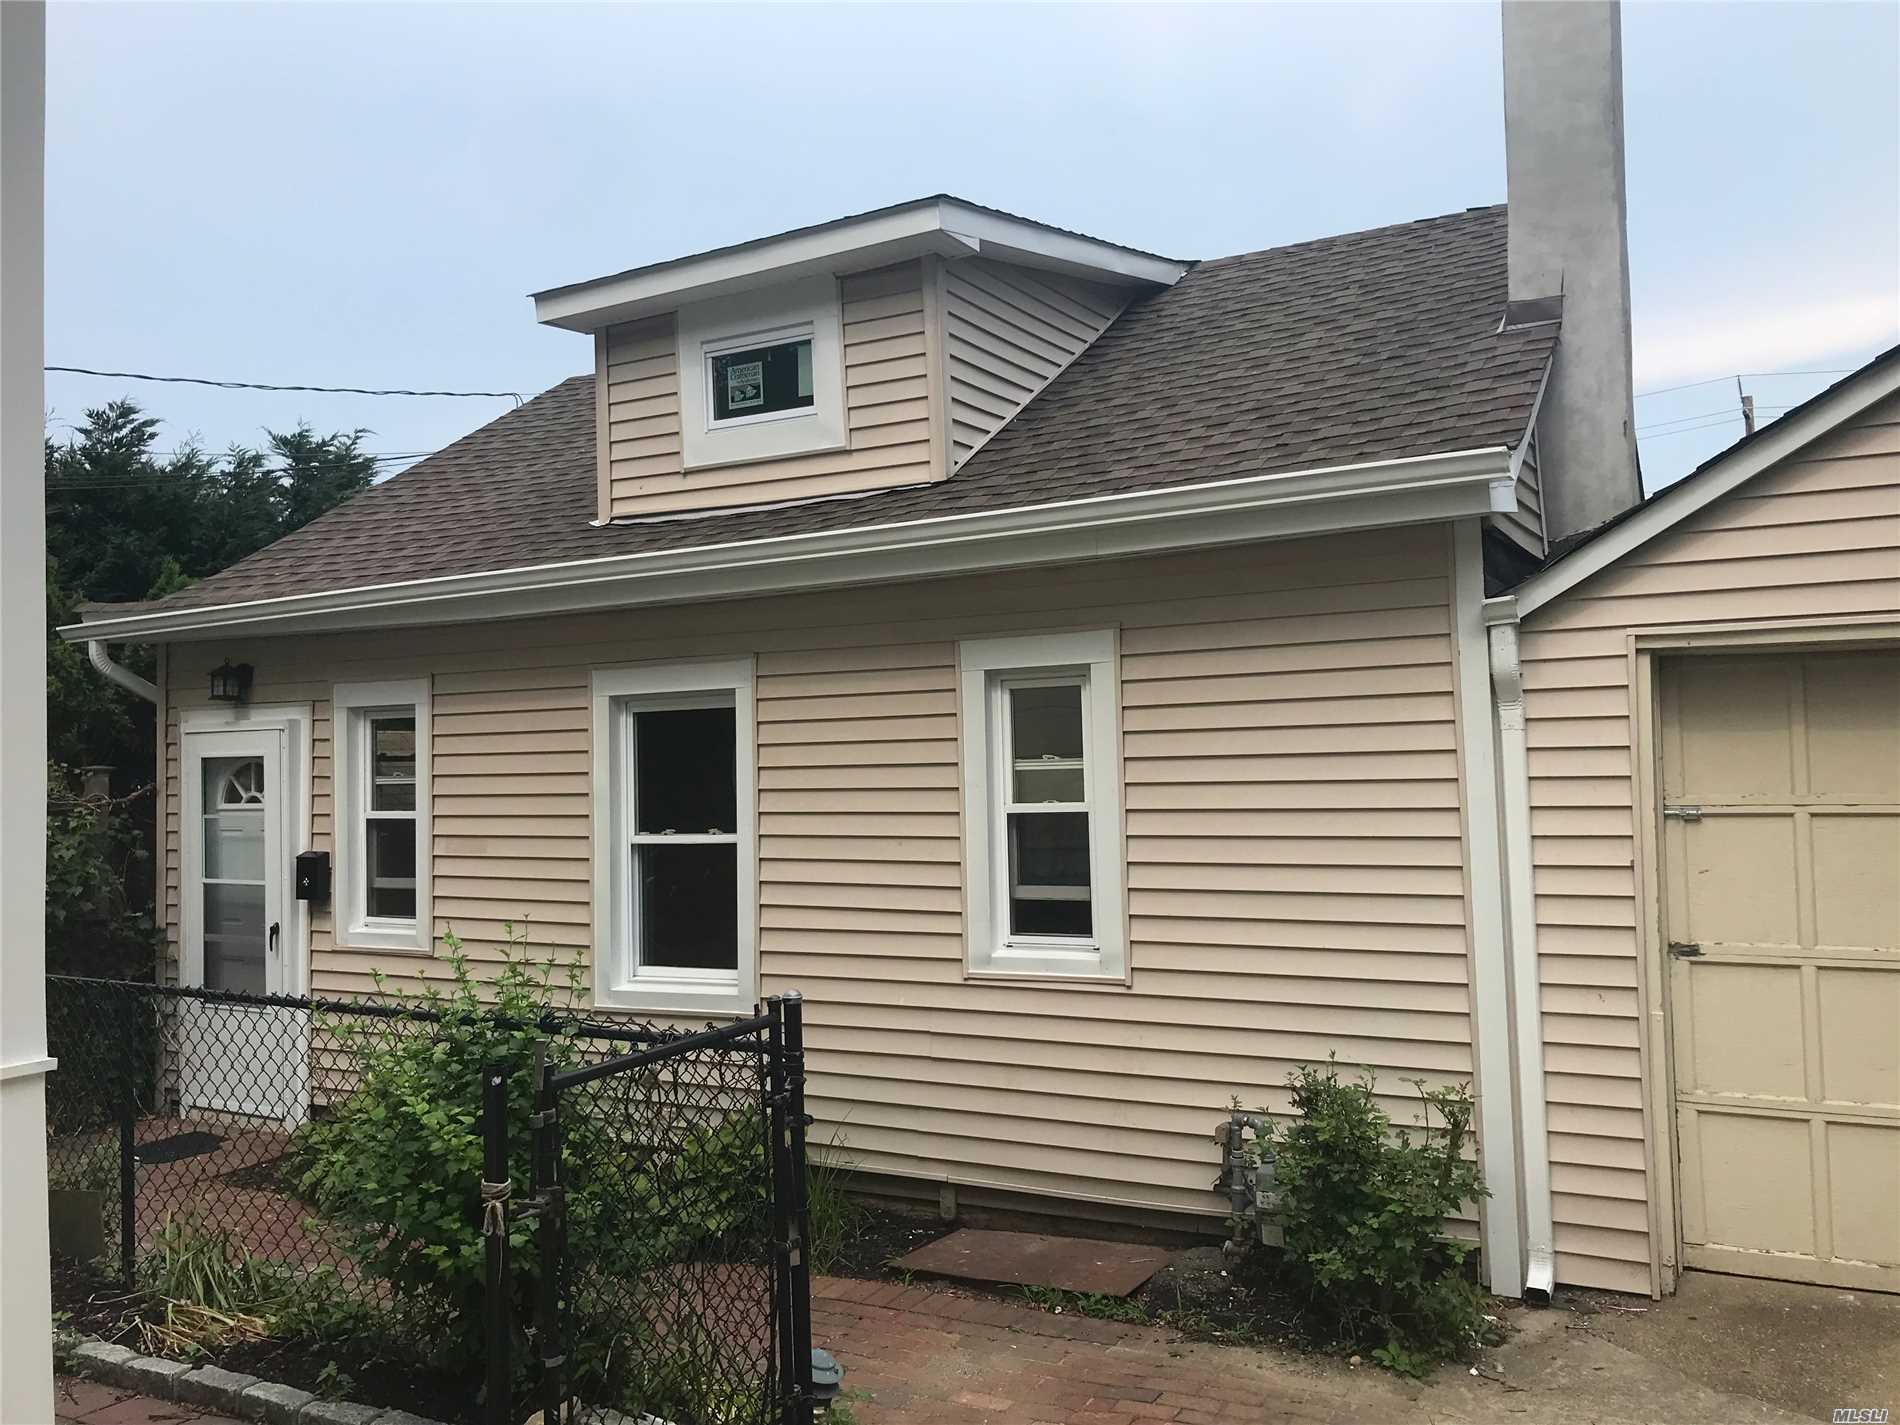 Totally Renovated Cottage - Kitchen Has Brand New Oven And Fridge, Granite Countertops, And Beautiful Stone Floor - Wood Floors And New Windows Throughout - 2 Ceiling Fans. Close To Grocery Stores, Laundromat, Restaurants. Very Private Space With Private Entrance. Bonus Walk-Up Finished Attic. Tenant Pays 1 Month Total Broker Fee.